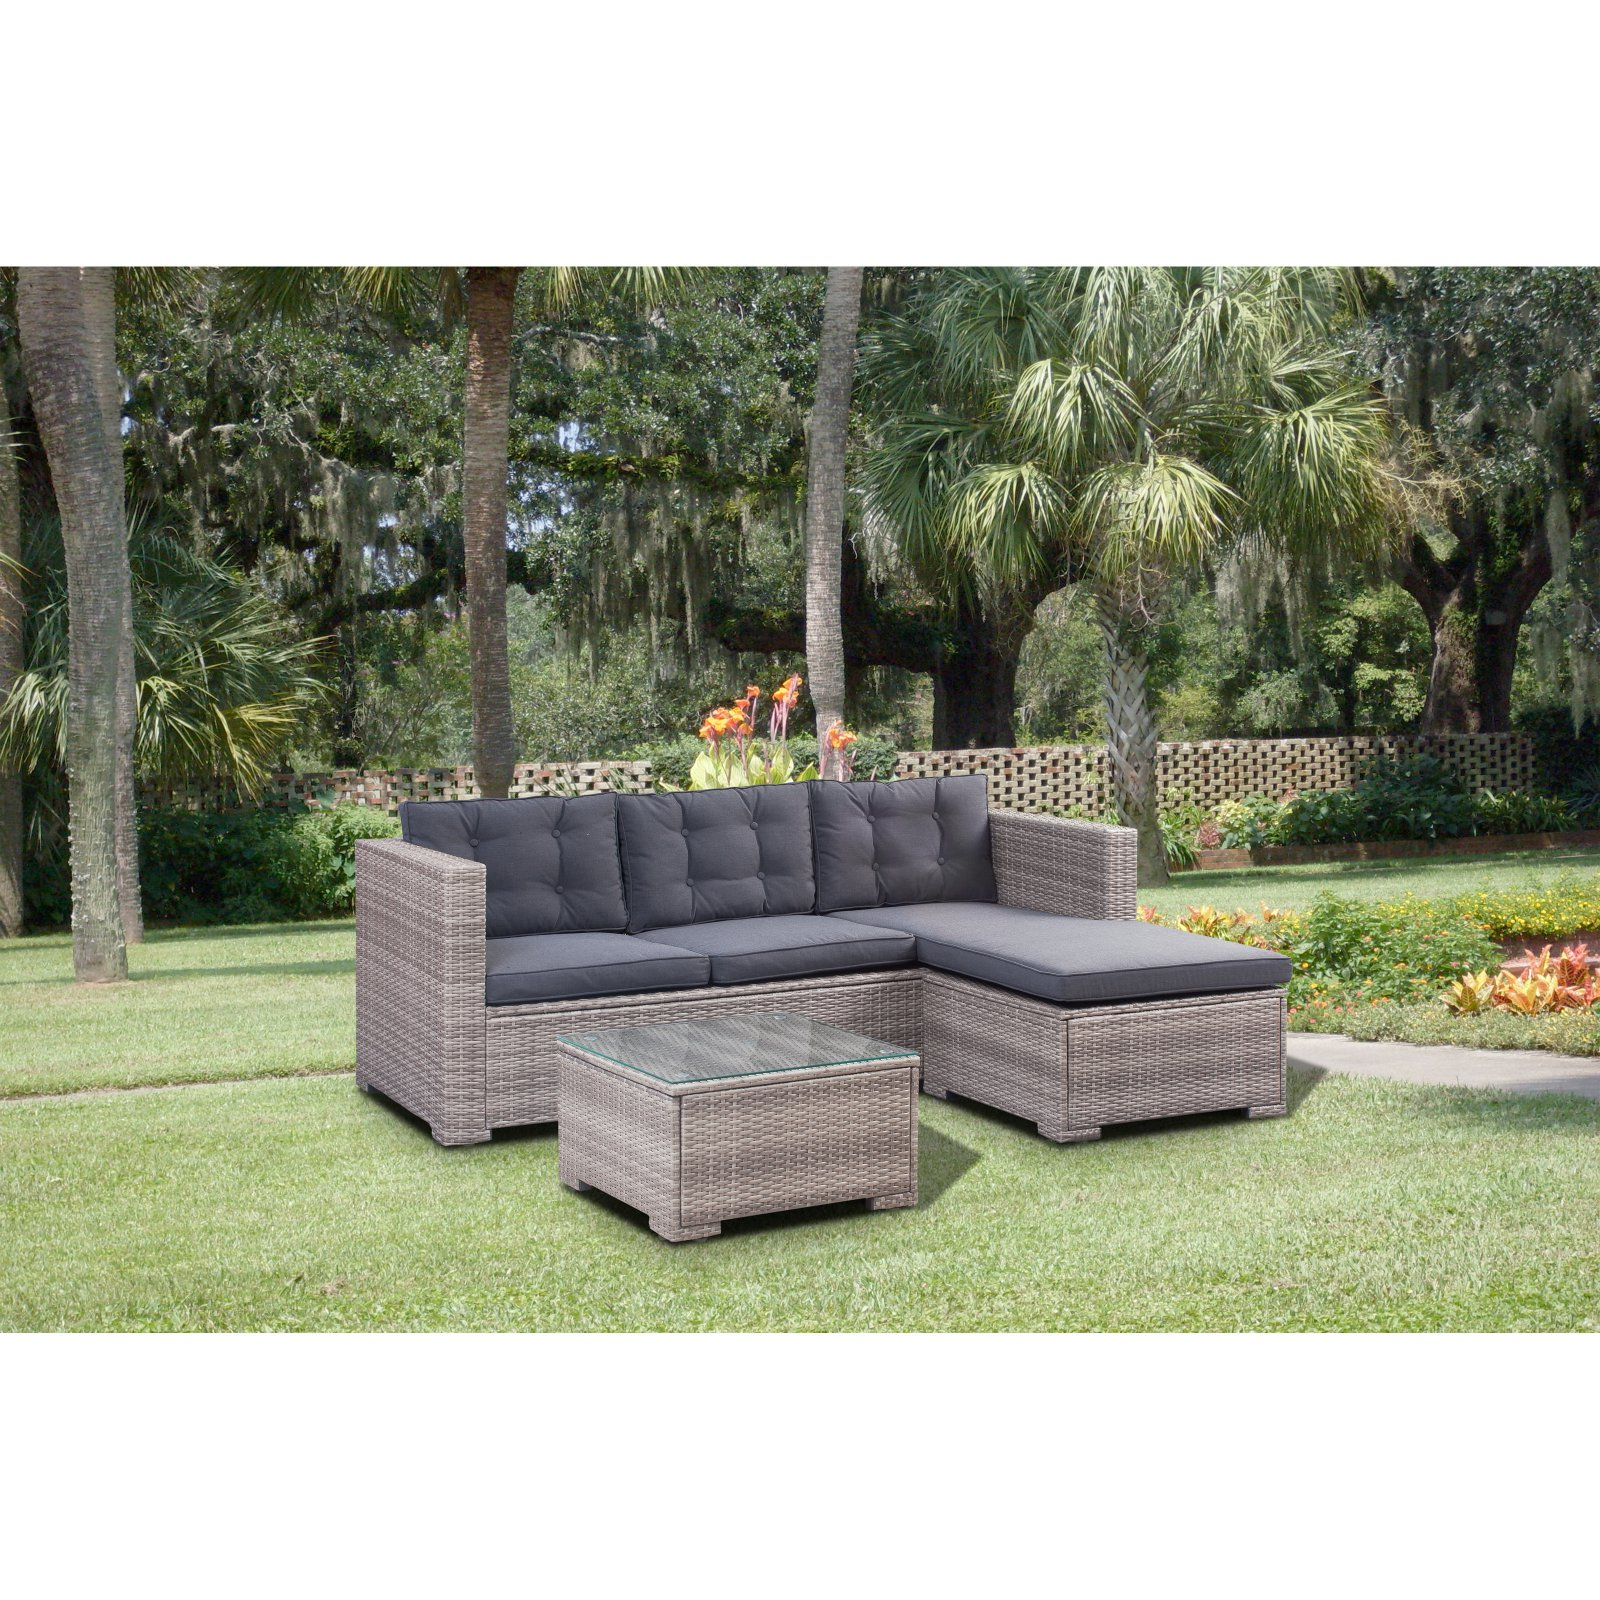 Keiran Patio Sofas With Cushions With Regard To 2019 Outdoor Boraam Vanessa Poly Rattan 3 Piece Patio Sofa (View 11 of 20)